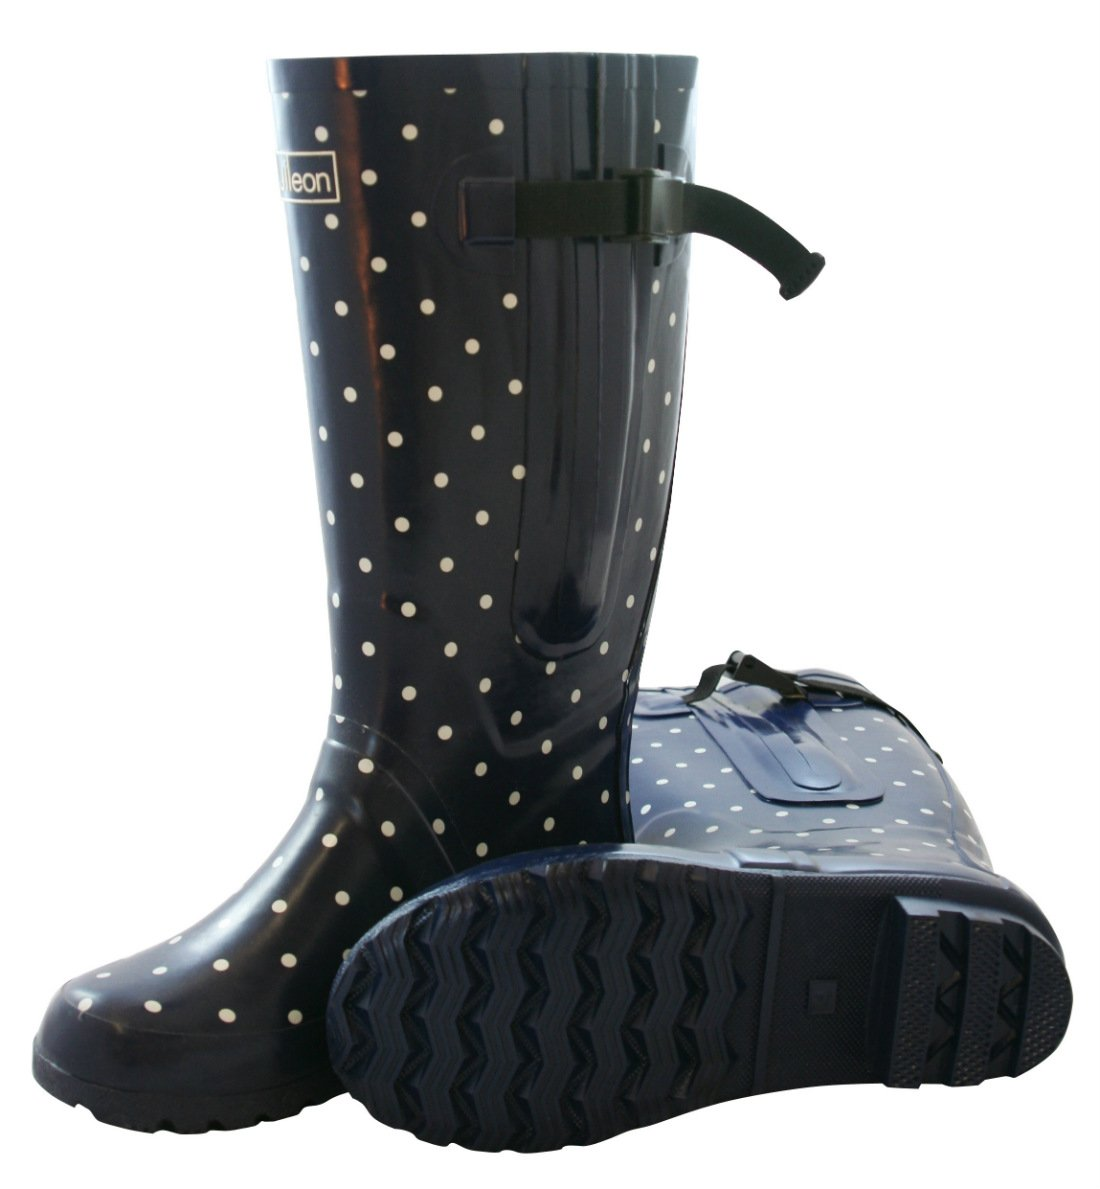 Jileon Extra Wide Calf Rubber Rain Boots for Women-Widest Fit Boots in The US-up to 21 inch Calves-Wide in The Foot and Ankle B012D69IHY 8 E (Extra Wide) US Navy With White Polka Dots